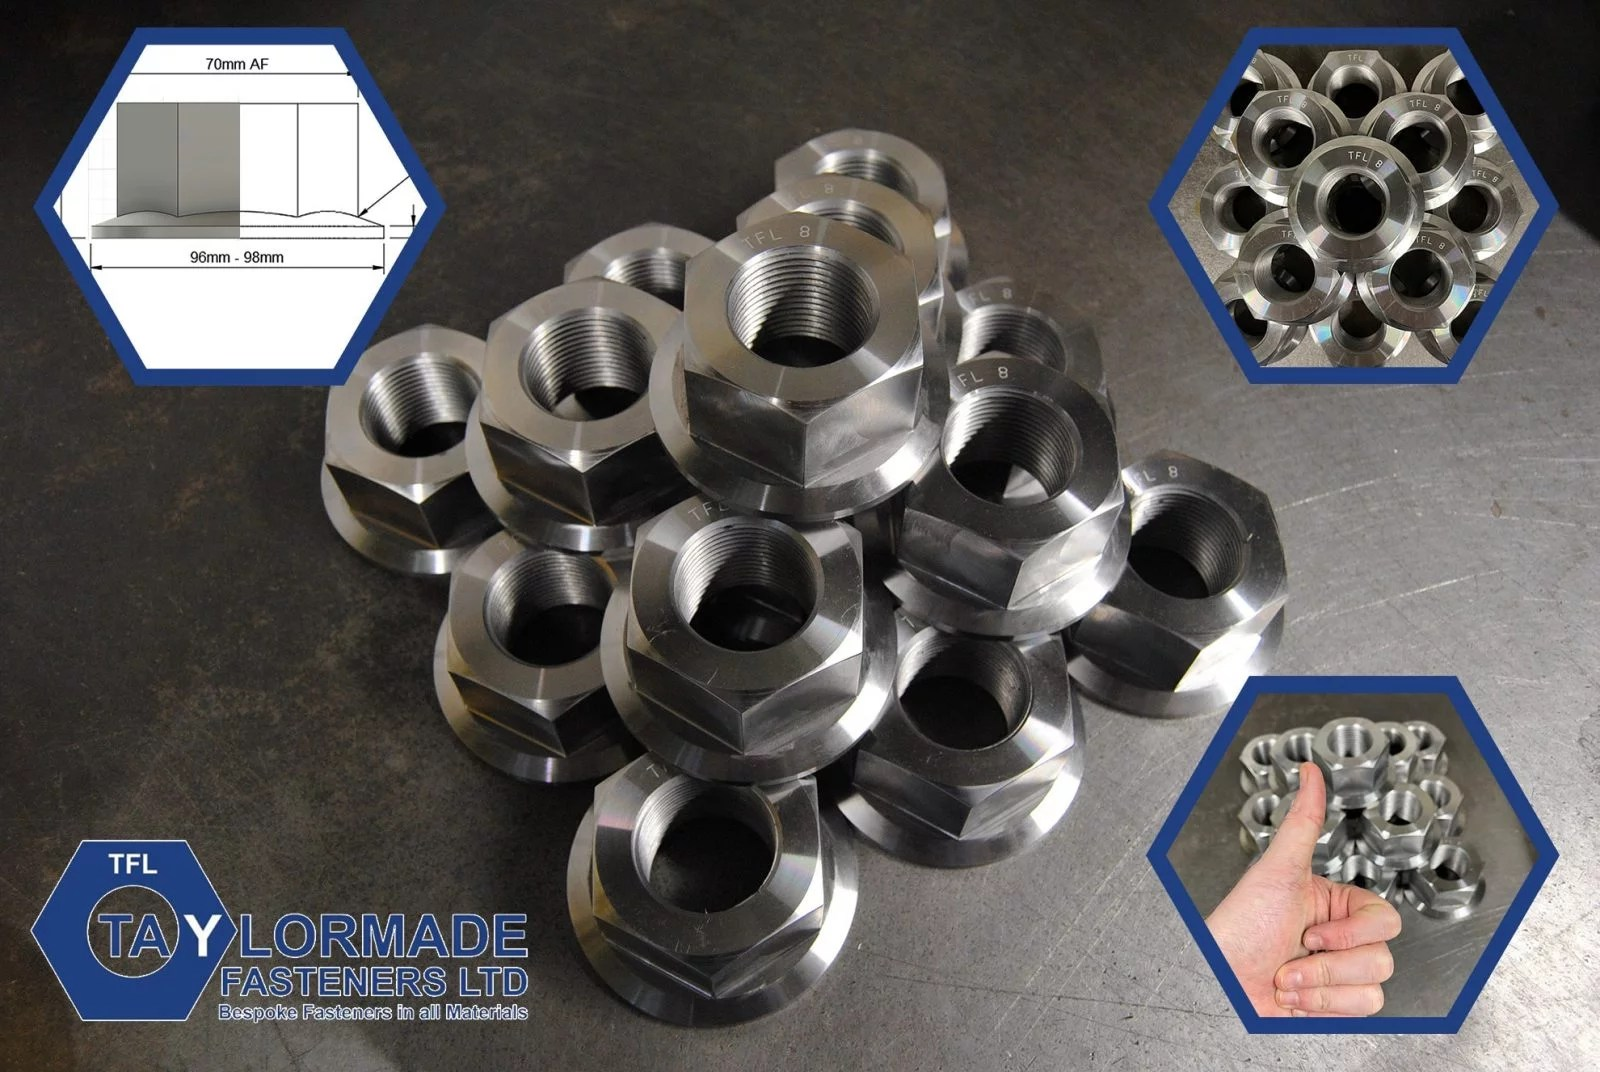 M45-3p (45mm o.all) Hex Nuts